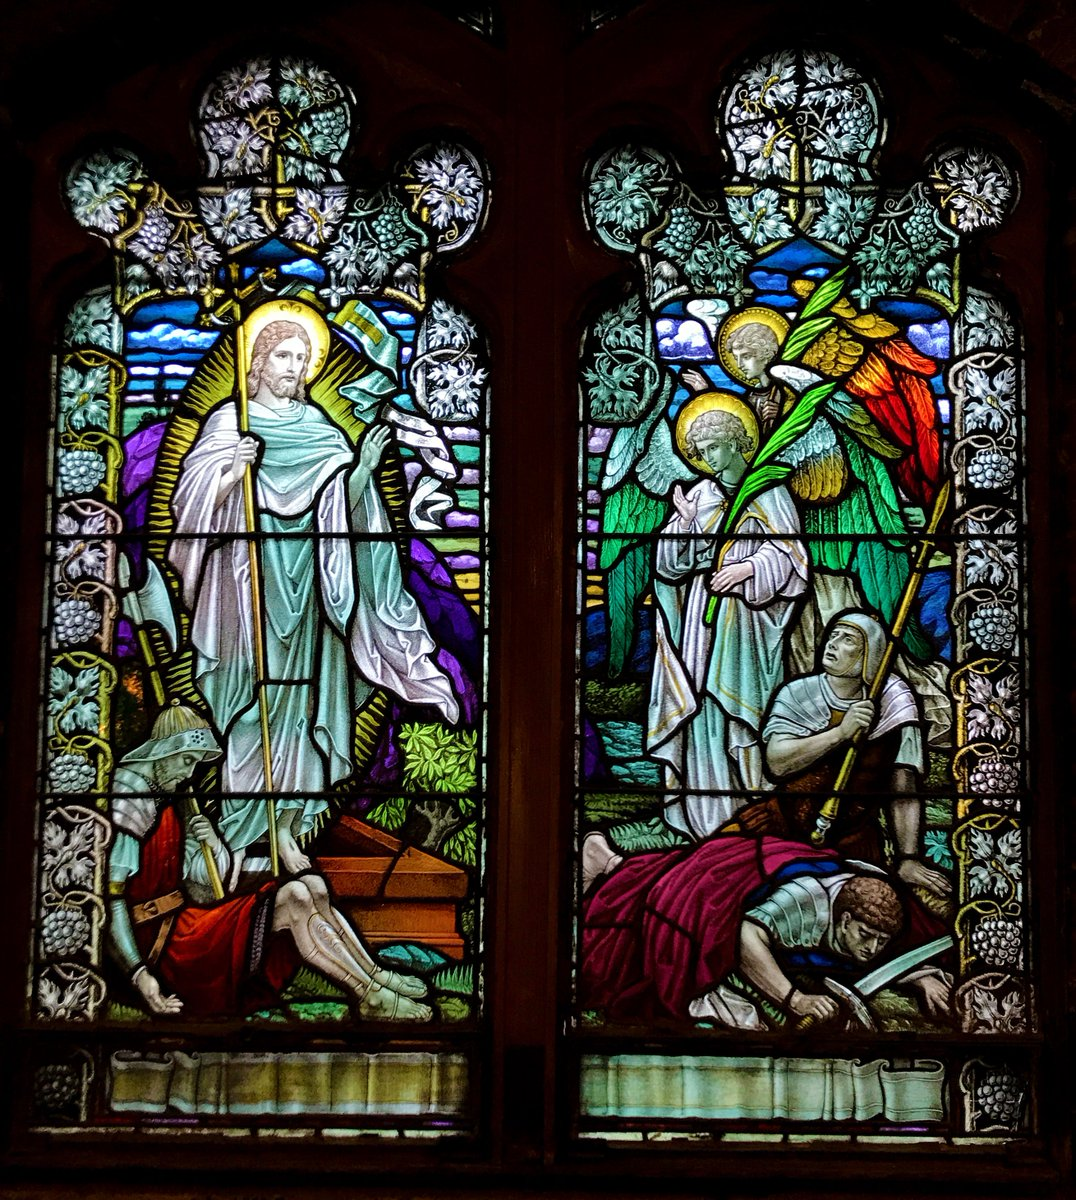 test Twitter Media - Happy #Easter from all of us at Cathedral High School!  📷 of stained glass window depicting the Resurrection formerly in Cathedral Convent chapel, now in our CHS Applied Learning Center lobby. https://t.co/OV1dI5rg9c